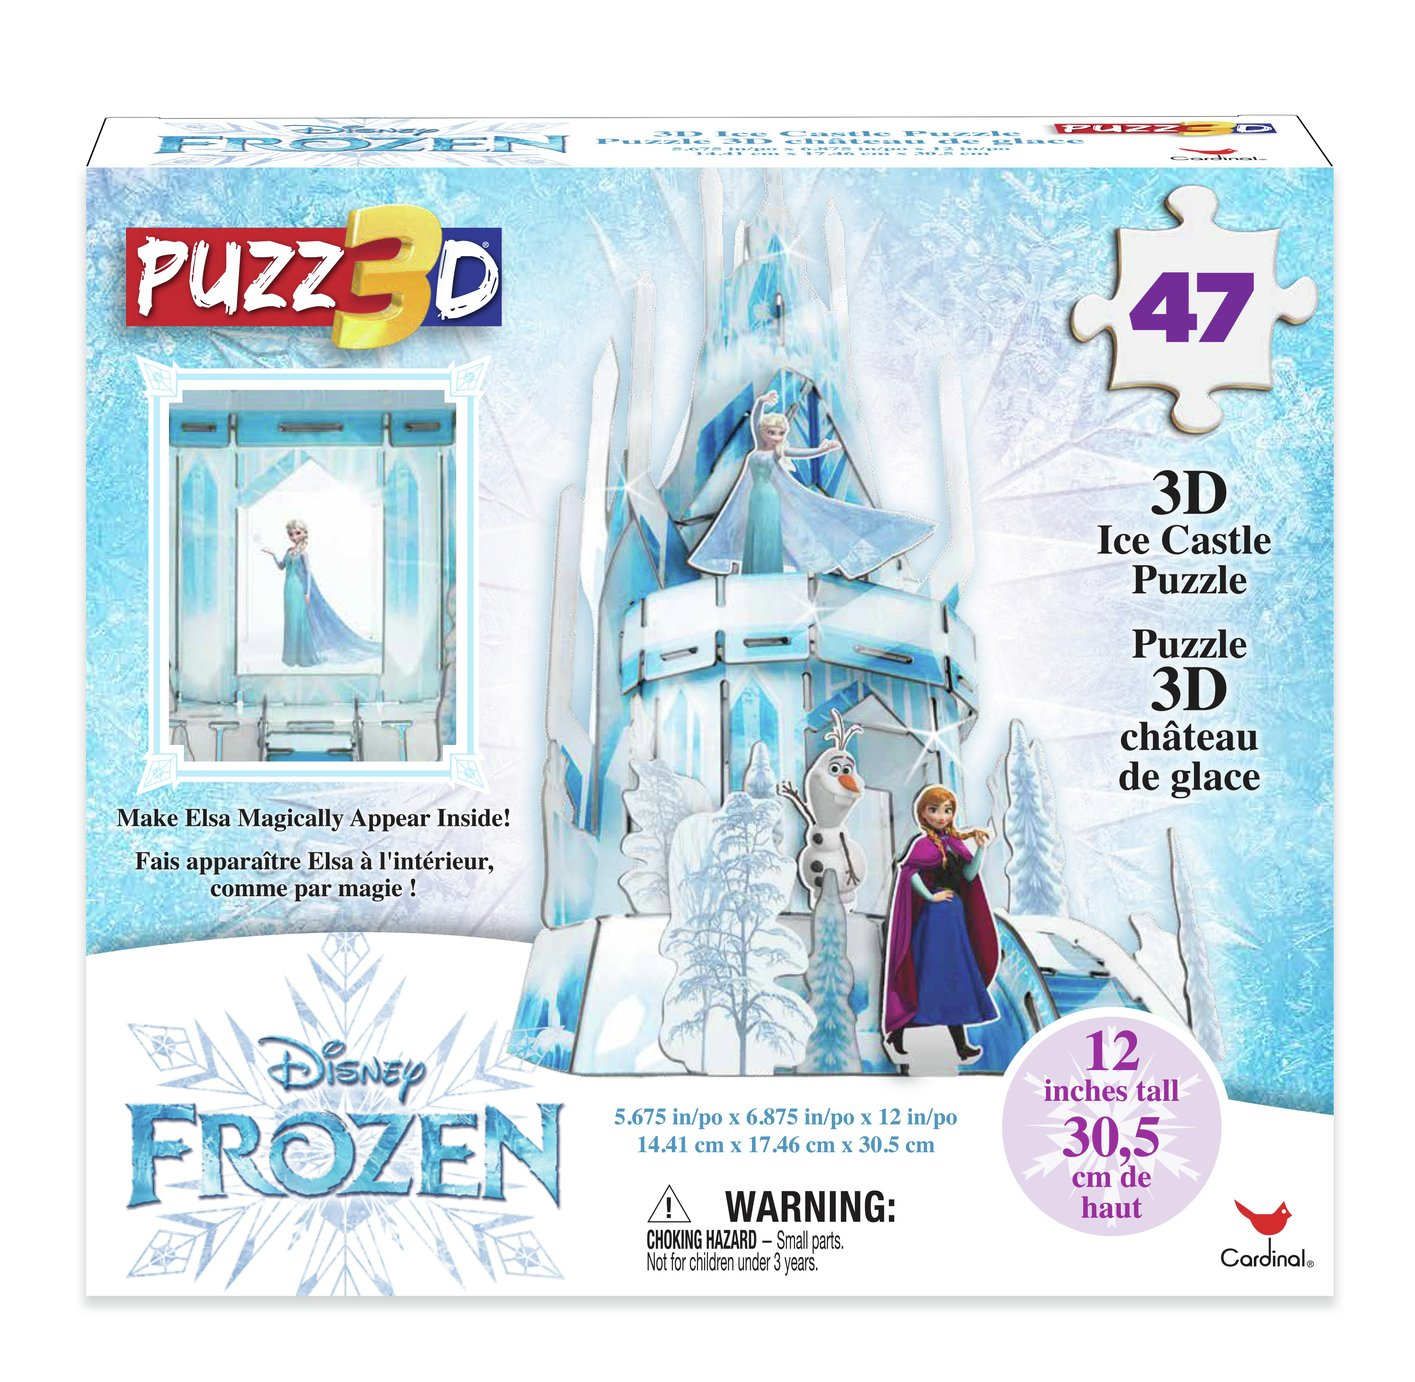 Disney Frozen 2 3D Palace Puzzle Playset